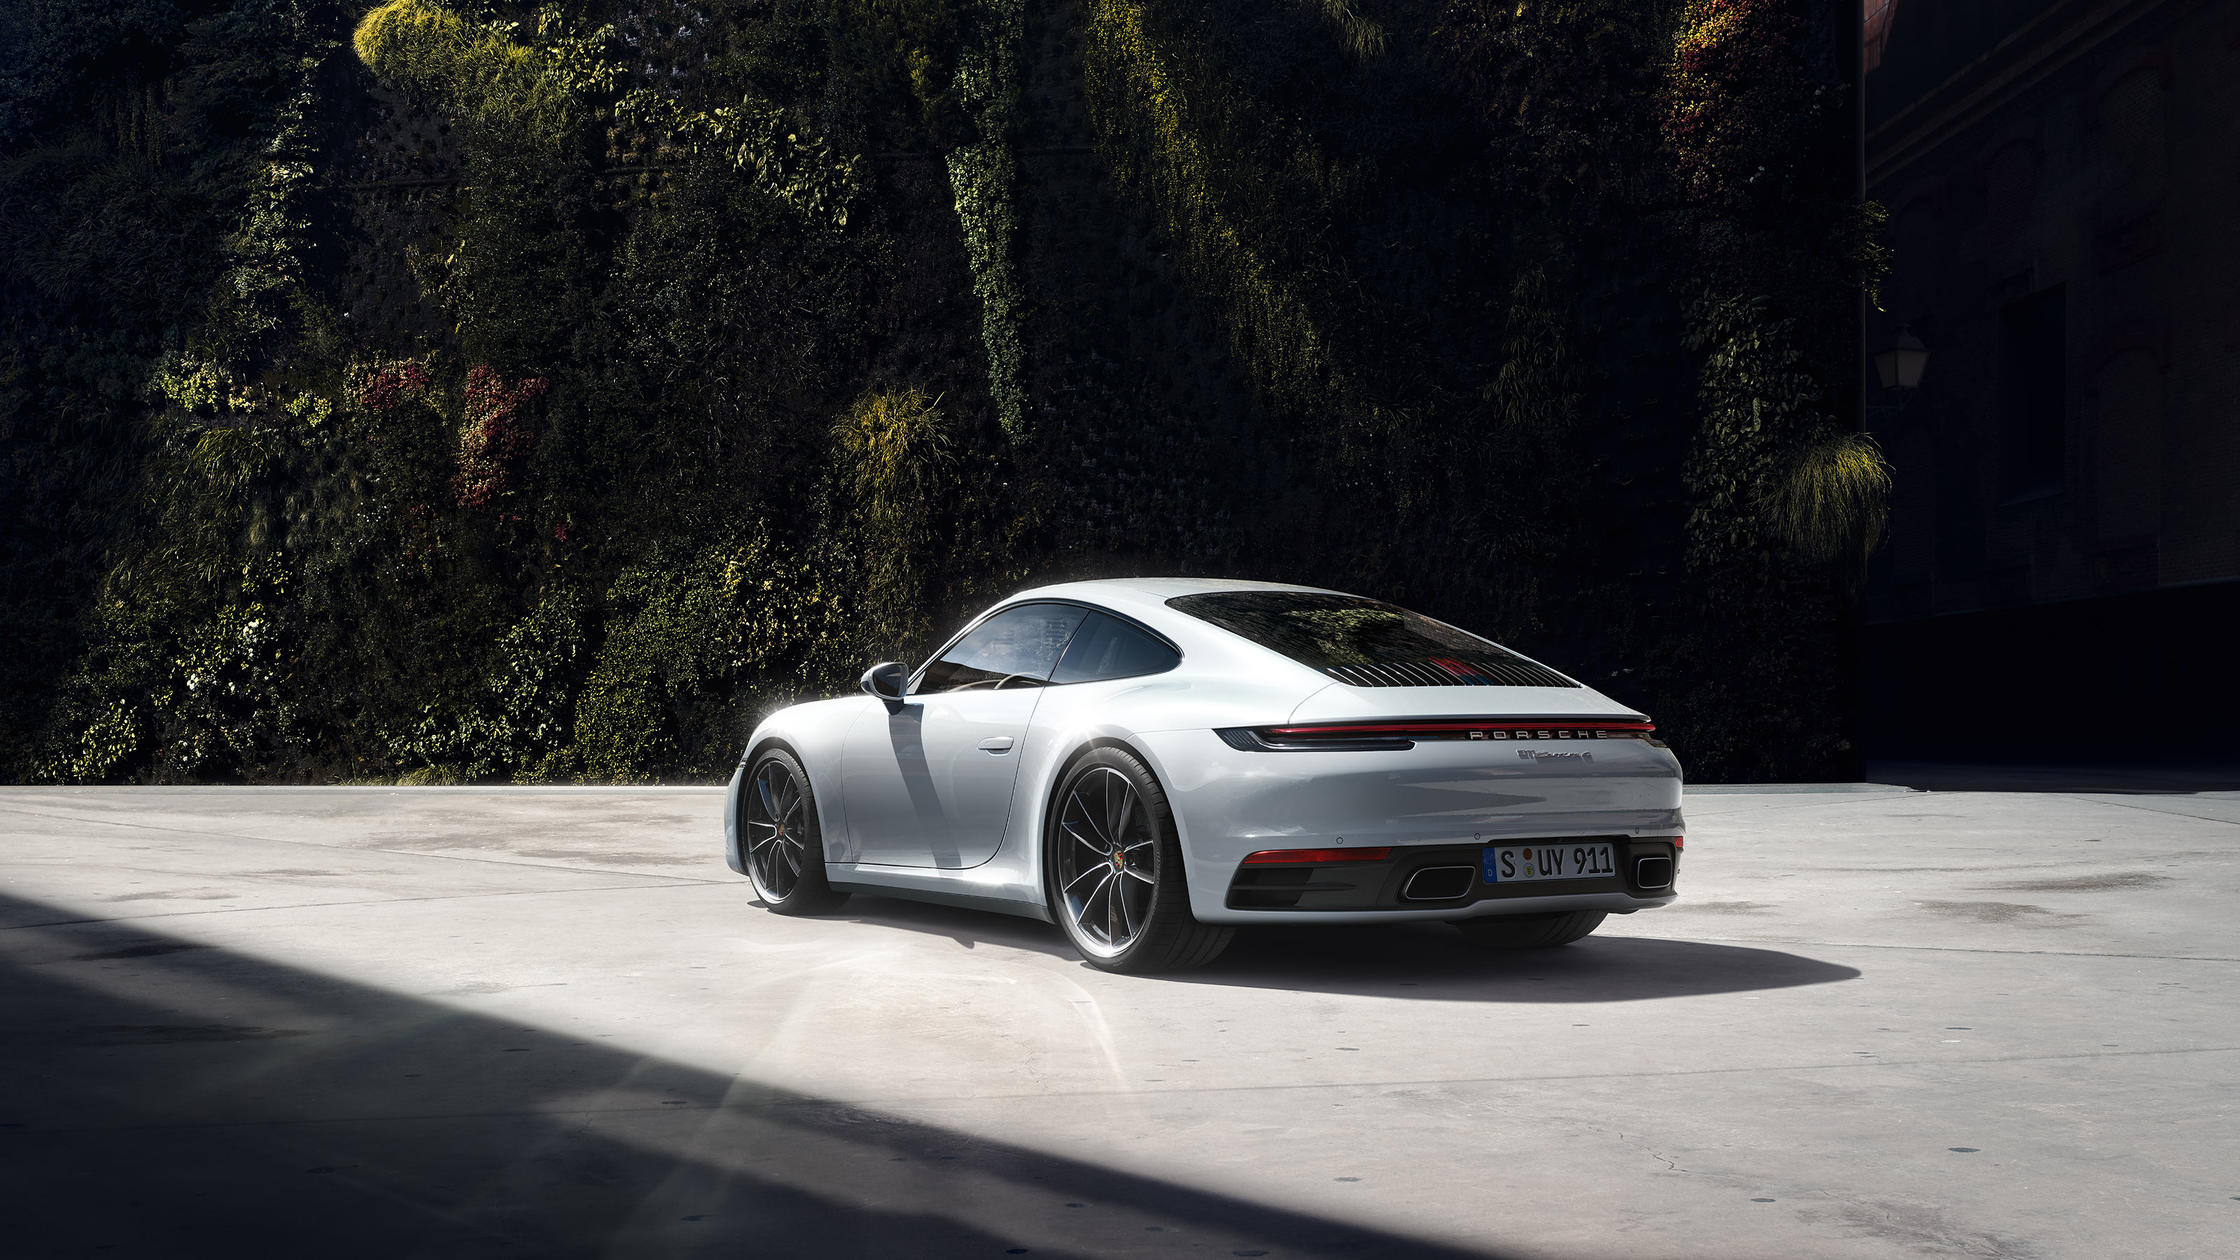 Porsche - 911 Carrera 4 Coupe - Ajatu masin.